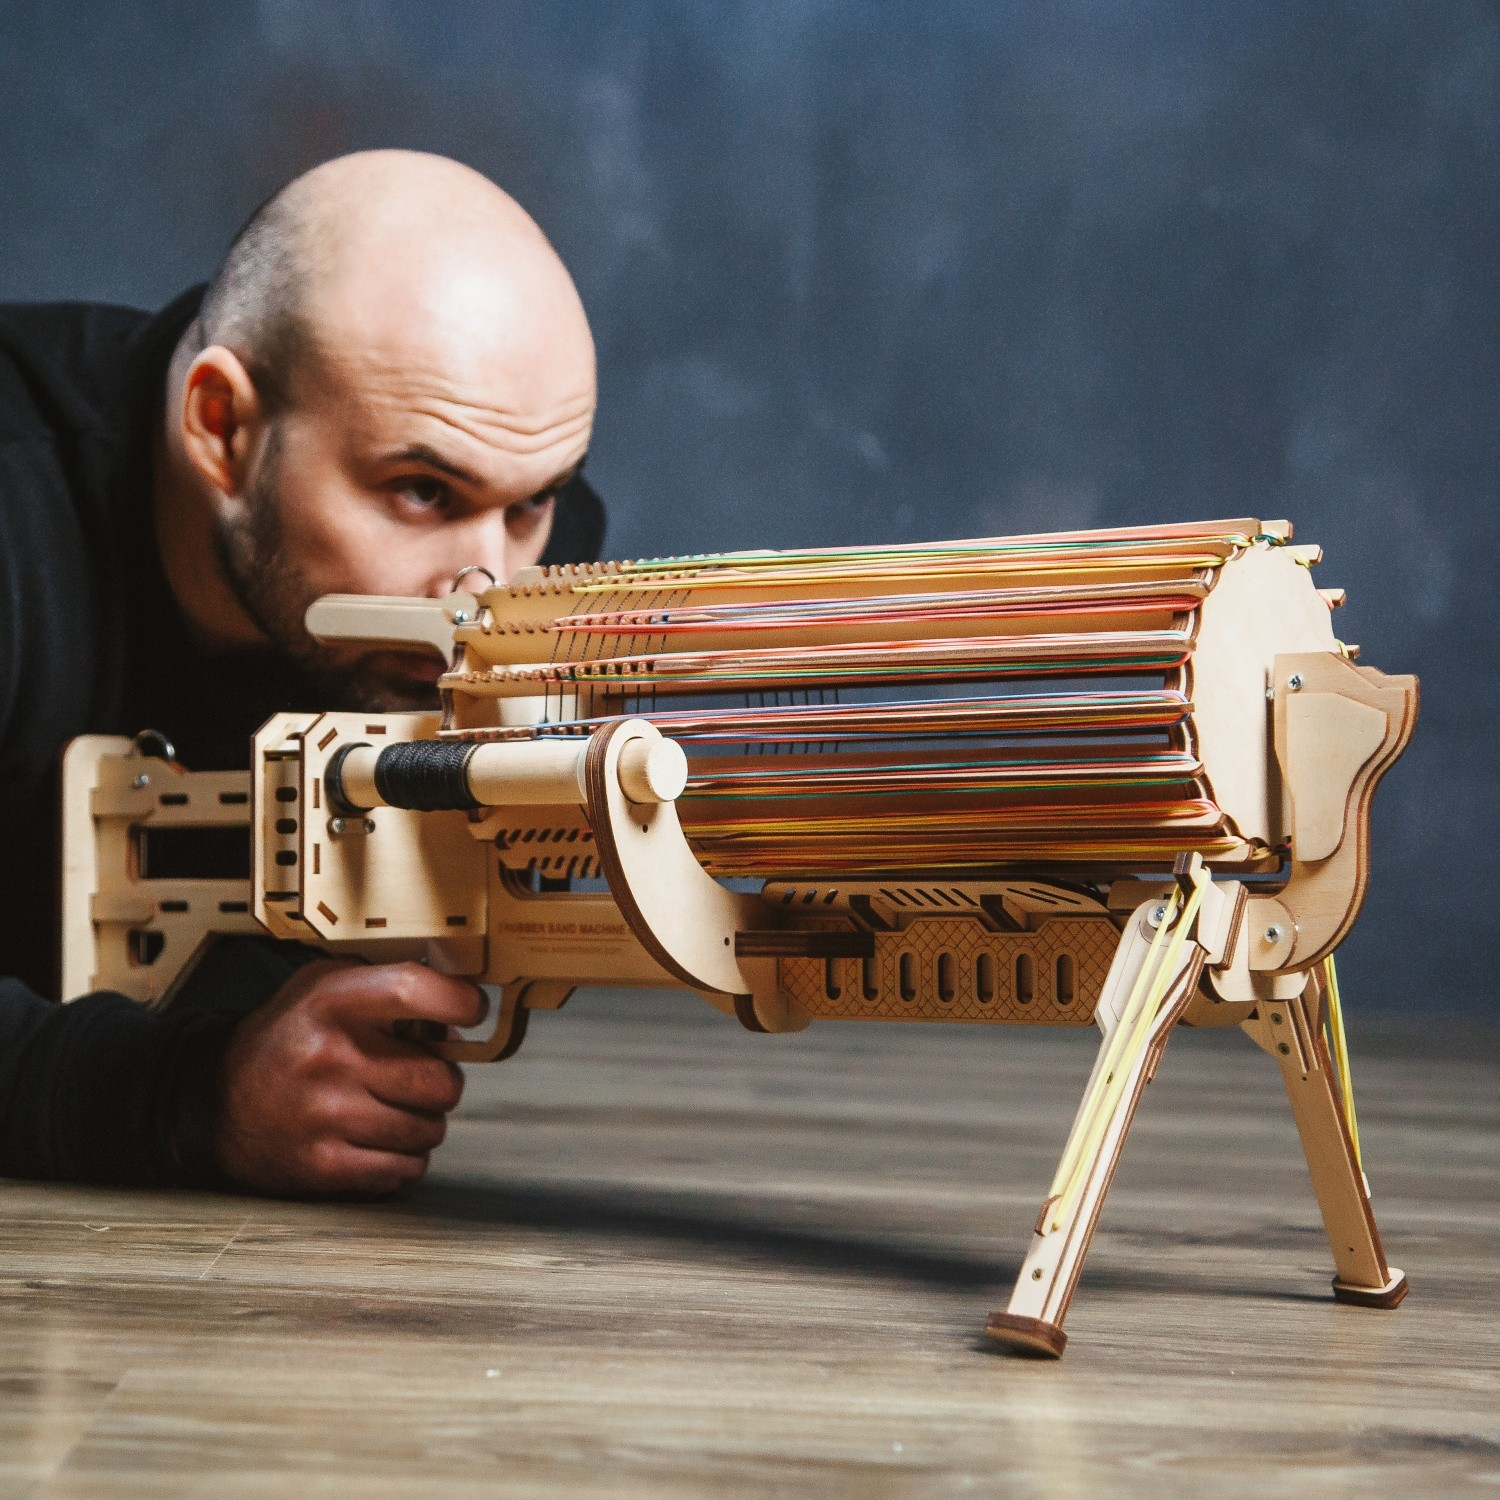 The Ultimate Rubber Band Machine Gun Woodnboom Touch